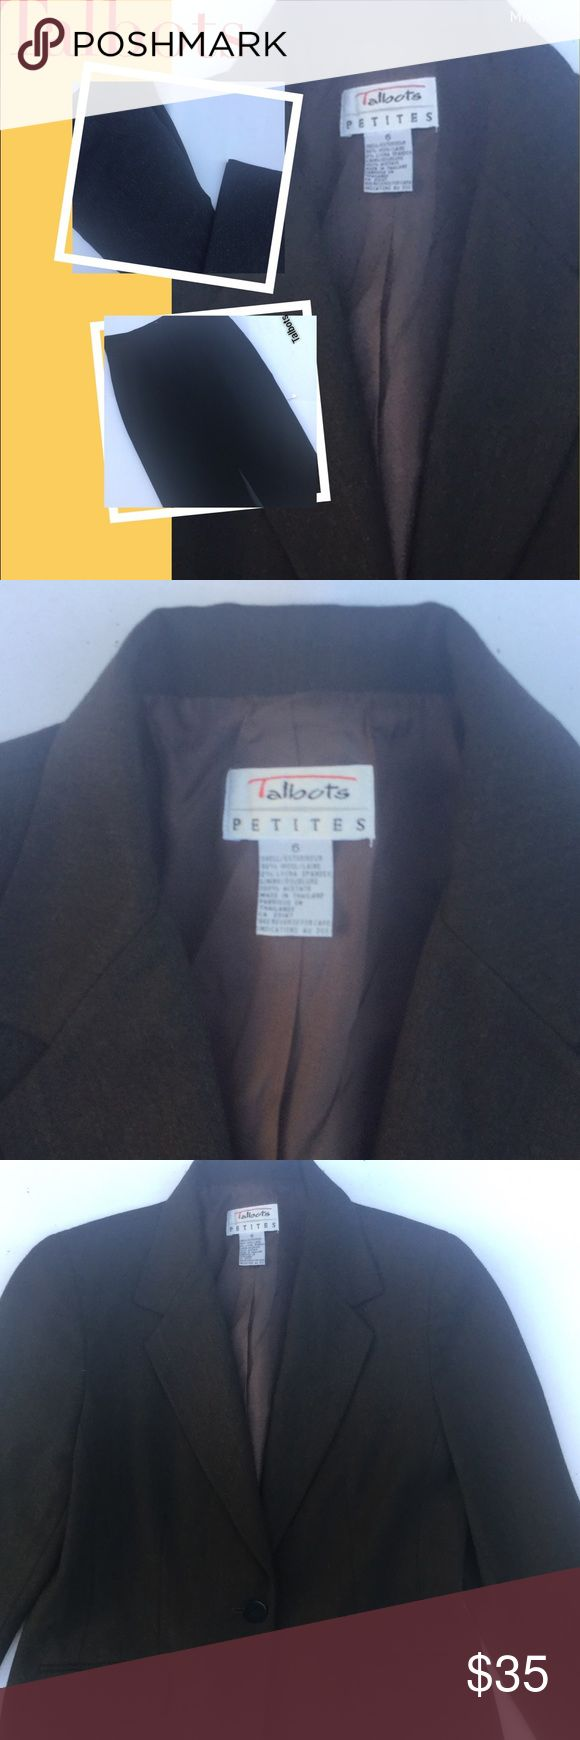 """💋""""Talbots"""" Petite Jacket💋 Shell exterireur with 98% wool/laine 2% Lycra spandex, Lining/ Doublure- 100% Acetate made in Thailand( the color is black with a hint of gold in the black color it's just gorgeous can be worn with black pants or a black skirt I would even wear this lovely jacket with a floral mid length skirt Talbots Jackets & Coats Blazers"""